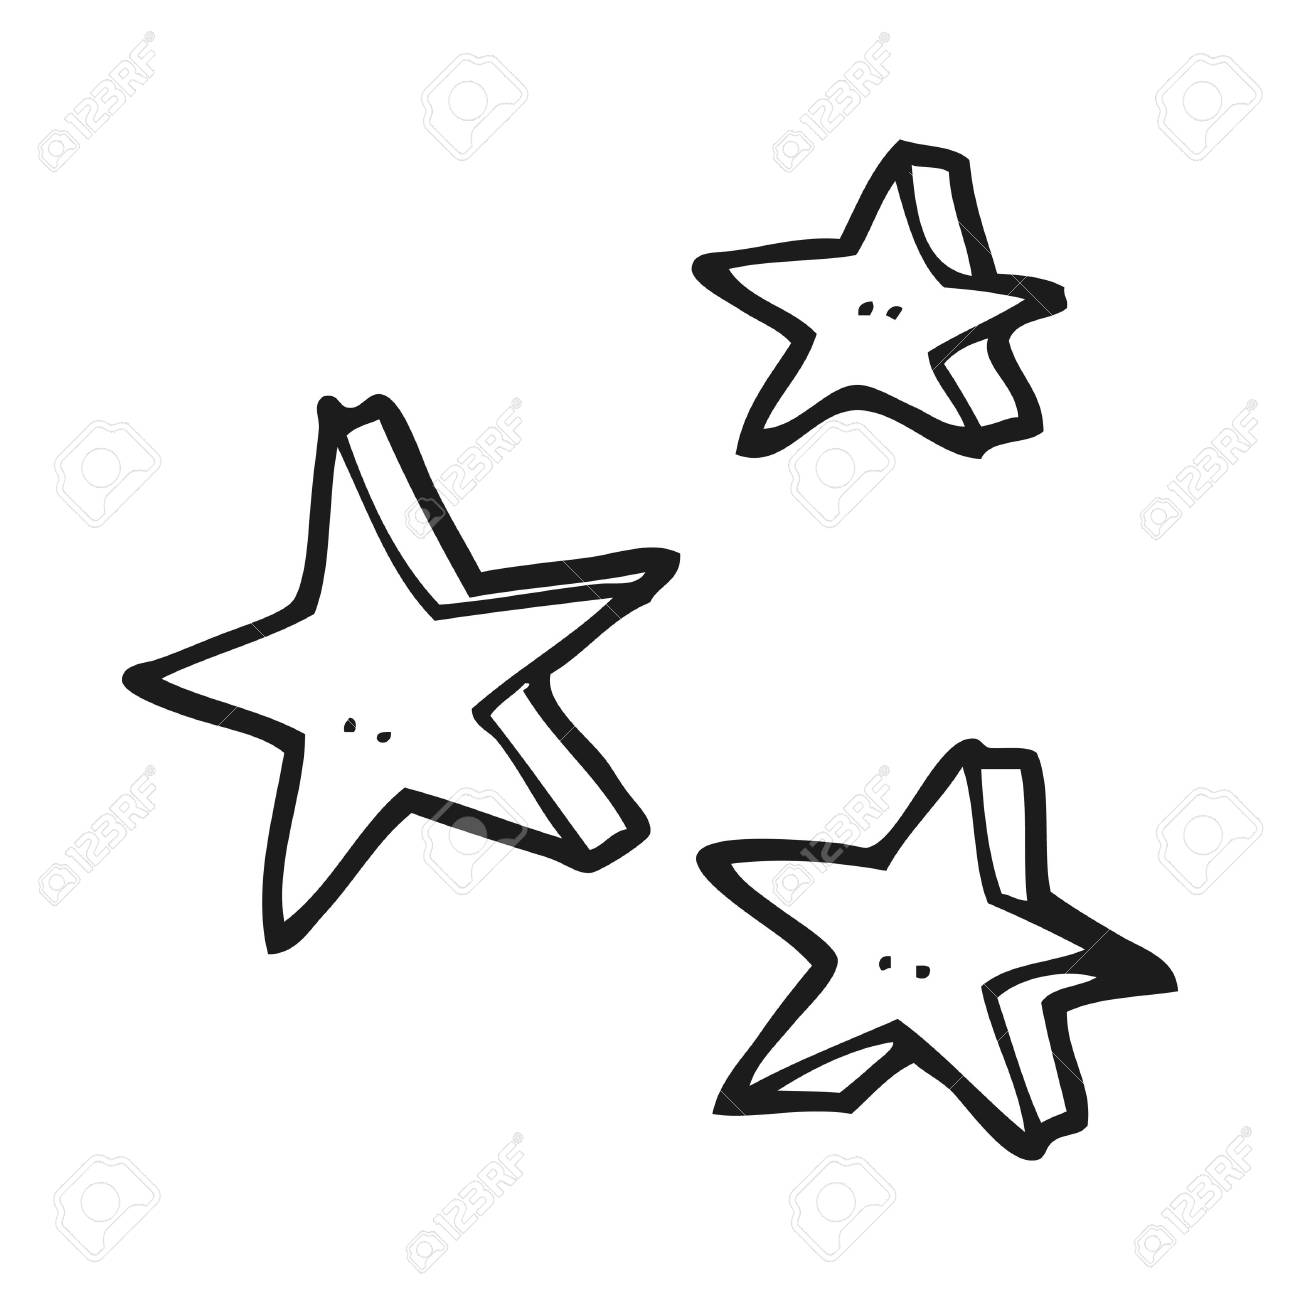 Freehand drawn black and white cartoon decorative doodle stars